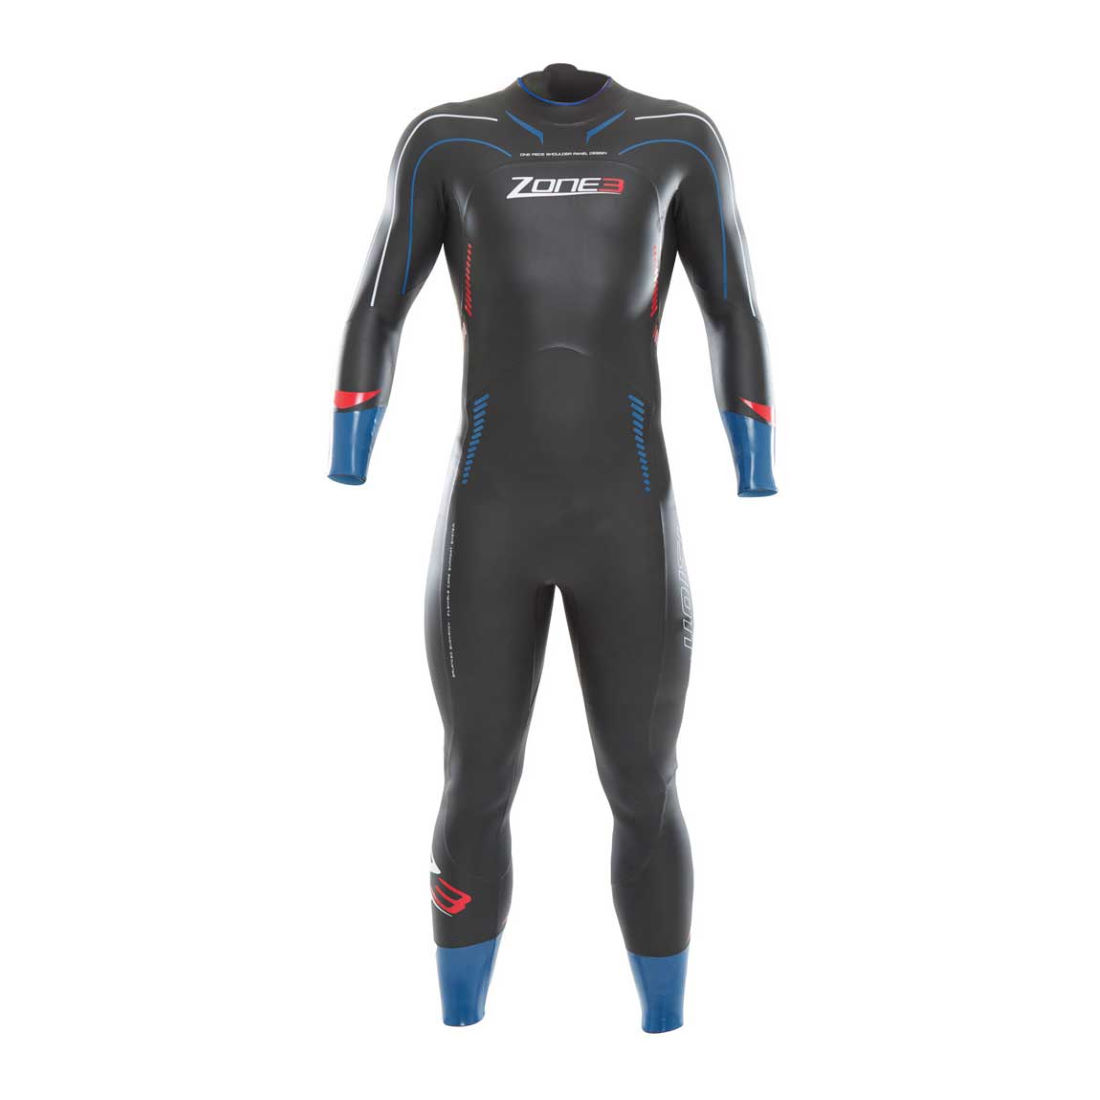 Wiggle | Zone3 Vision Wetsuit | Wetsuits